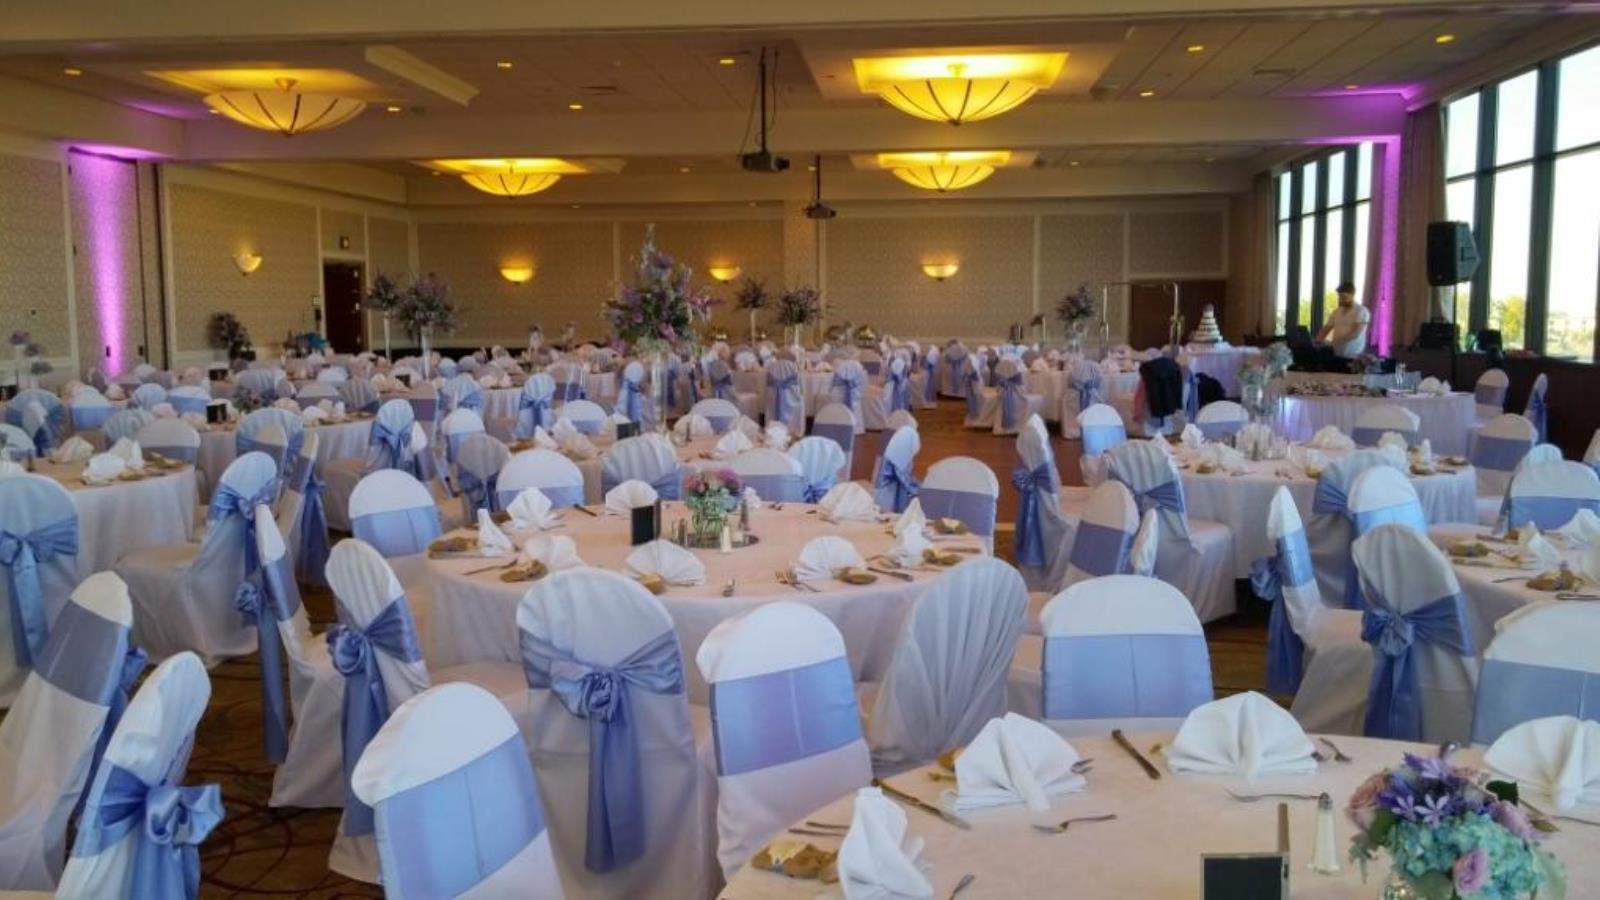 Denver Wedding Venues - City Lights Ballroom